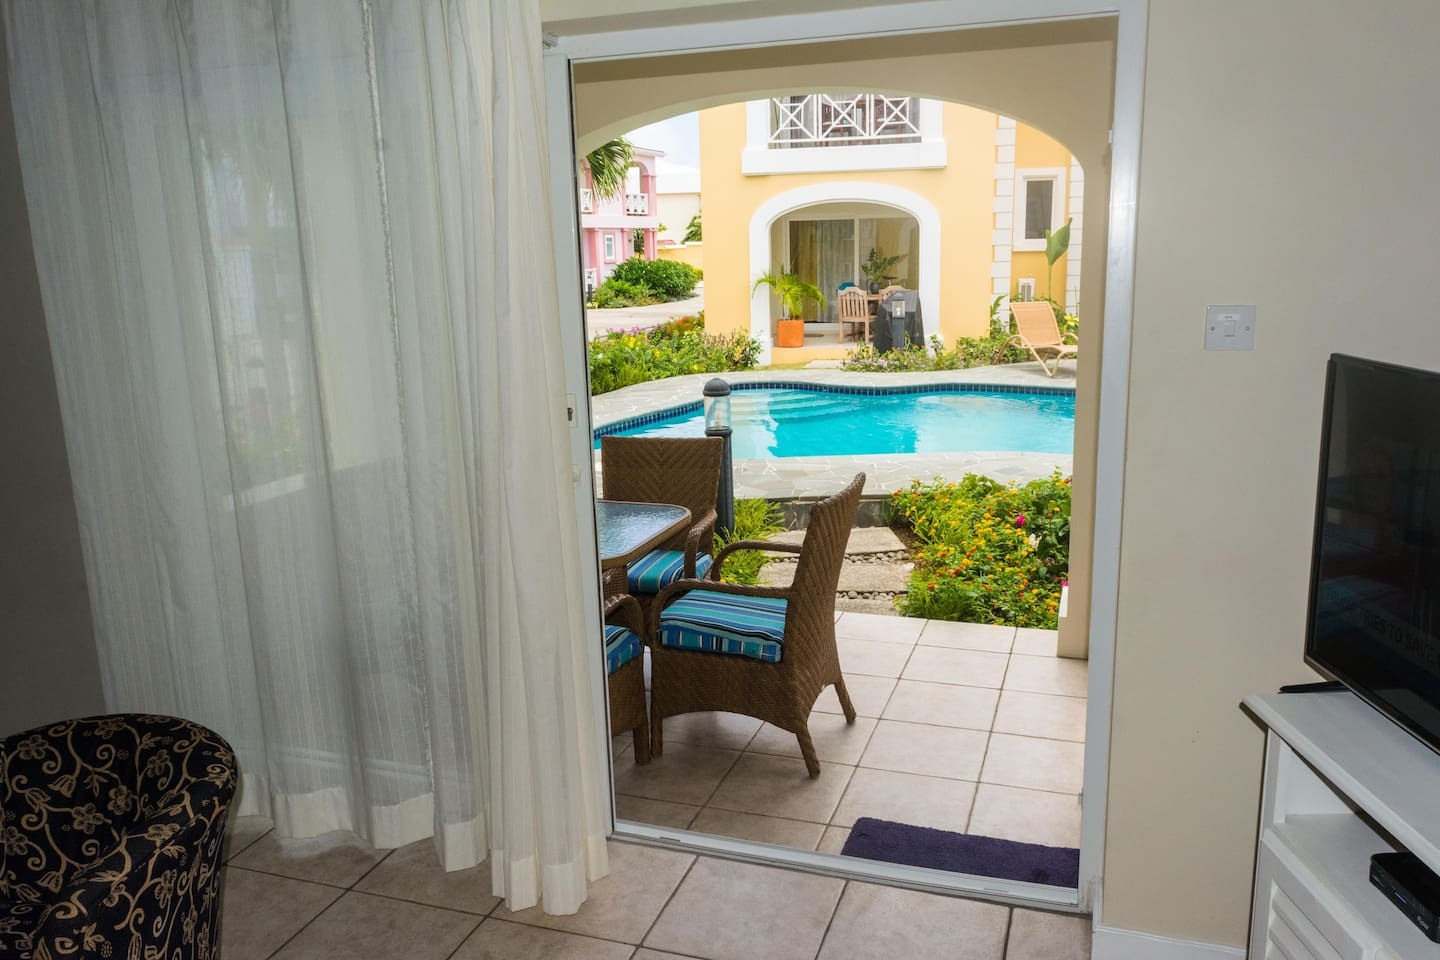 Patio leading to pool